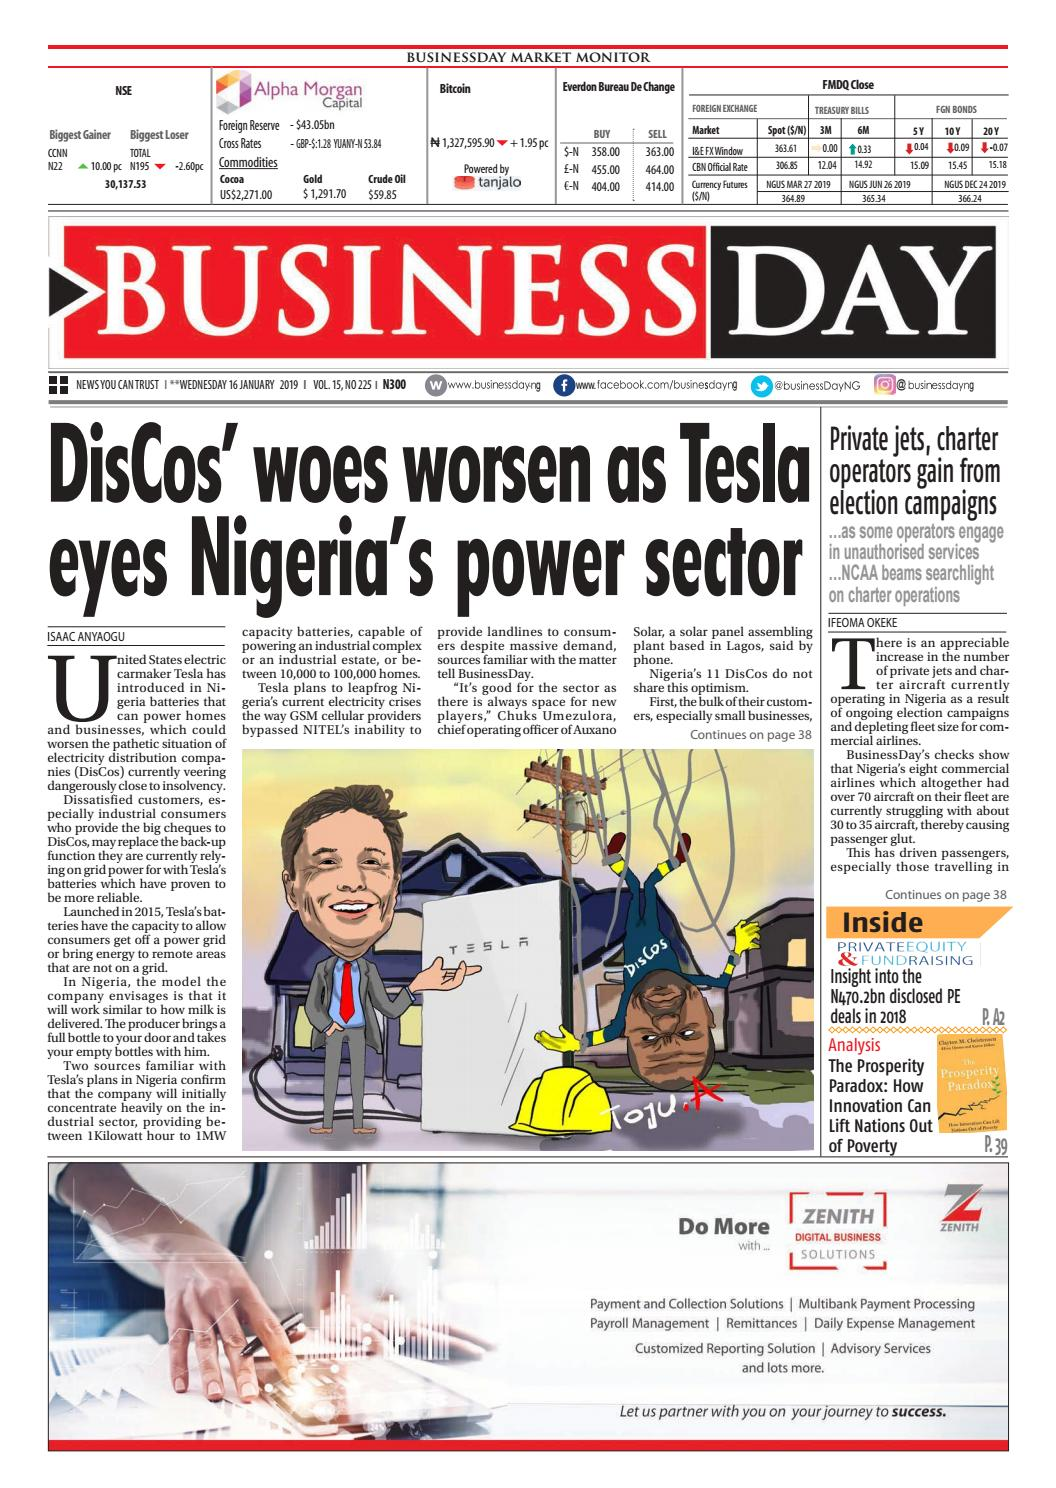 BusinessDay 16 Jan 2019 by BusinessDay - issuu